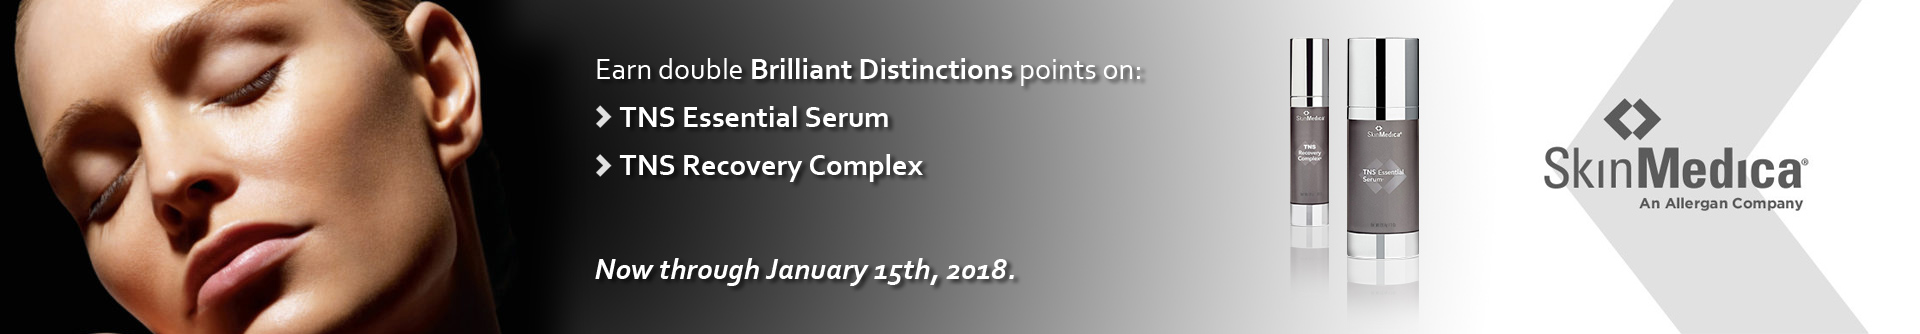 Earn double Brilliant Distinctions points!